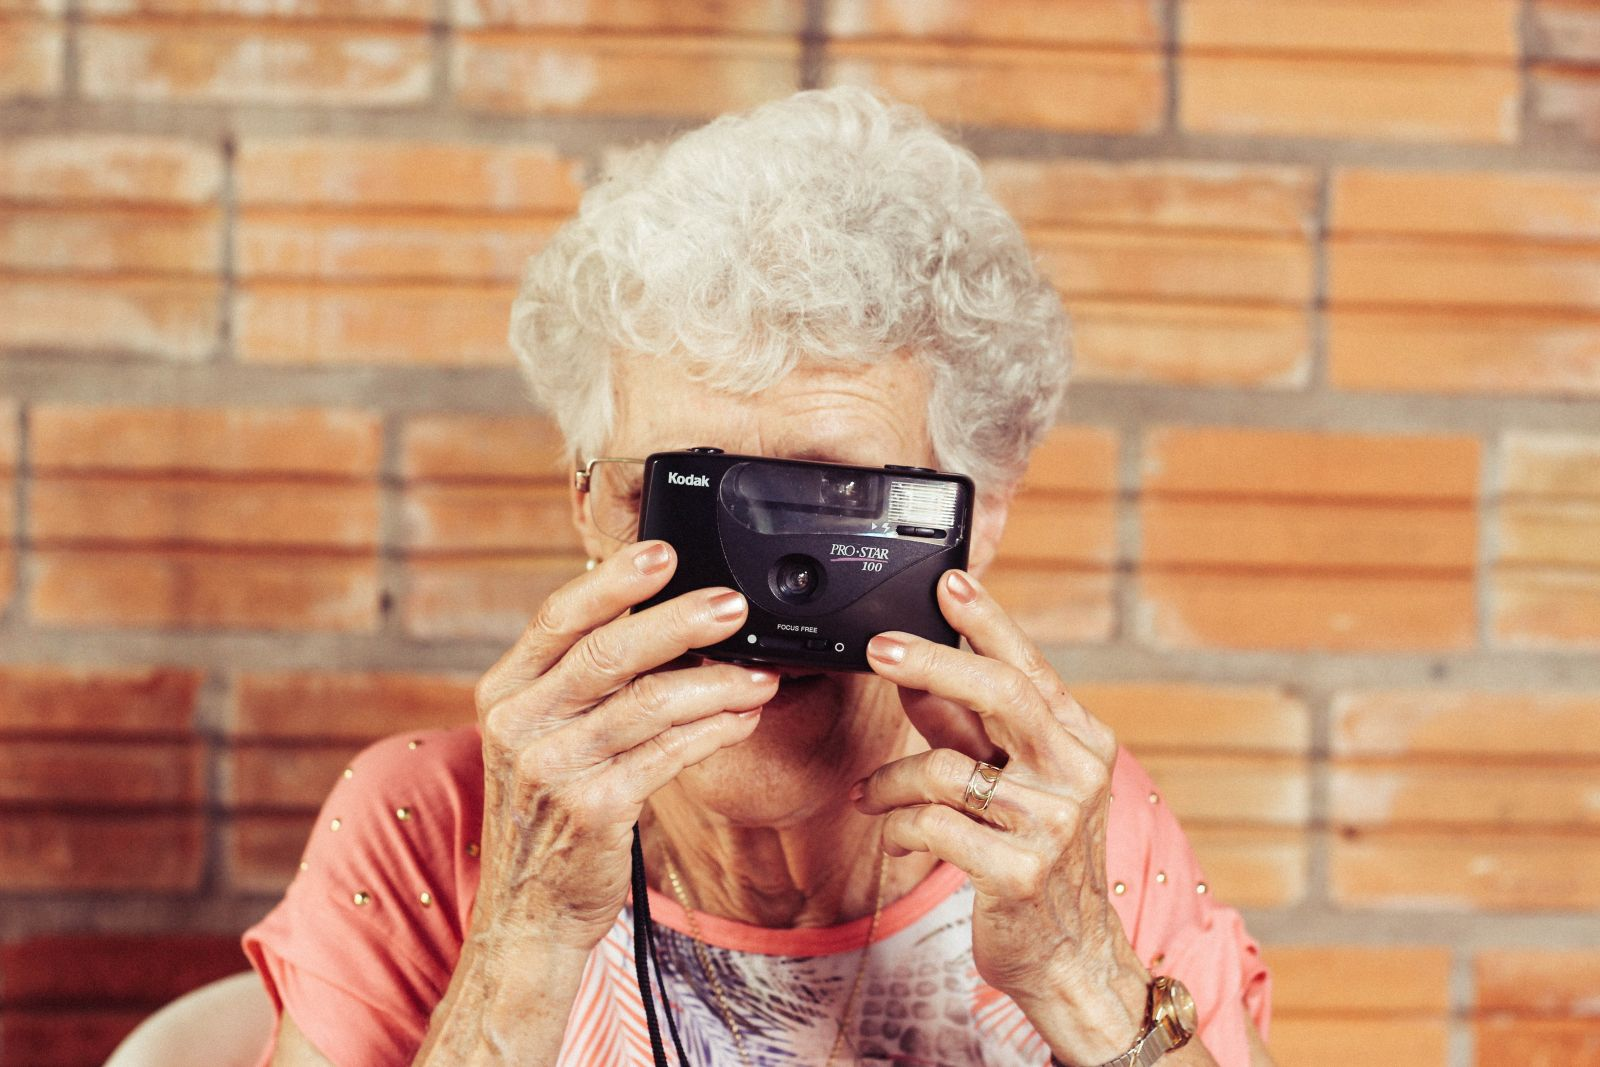 An older woman holds up a camera in front of her face